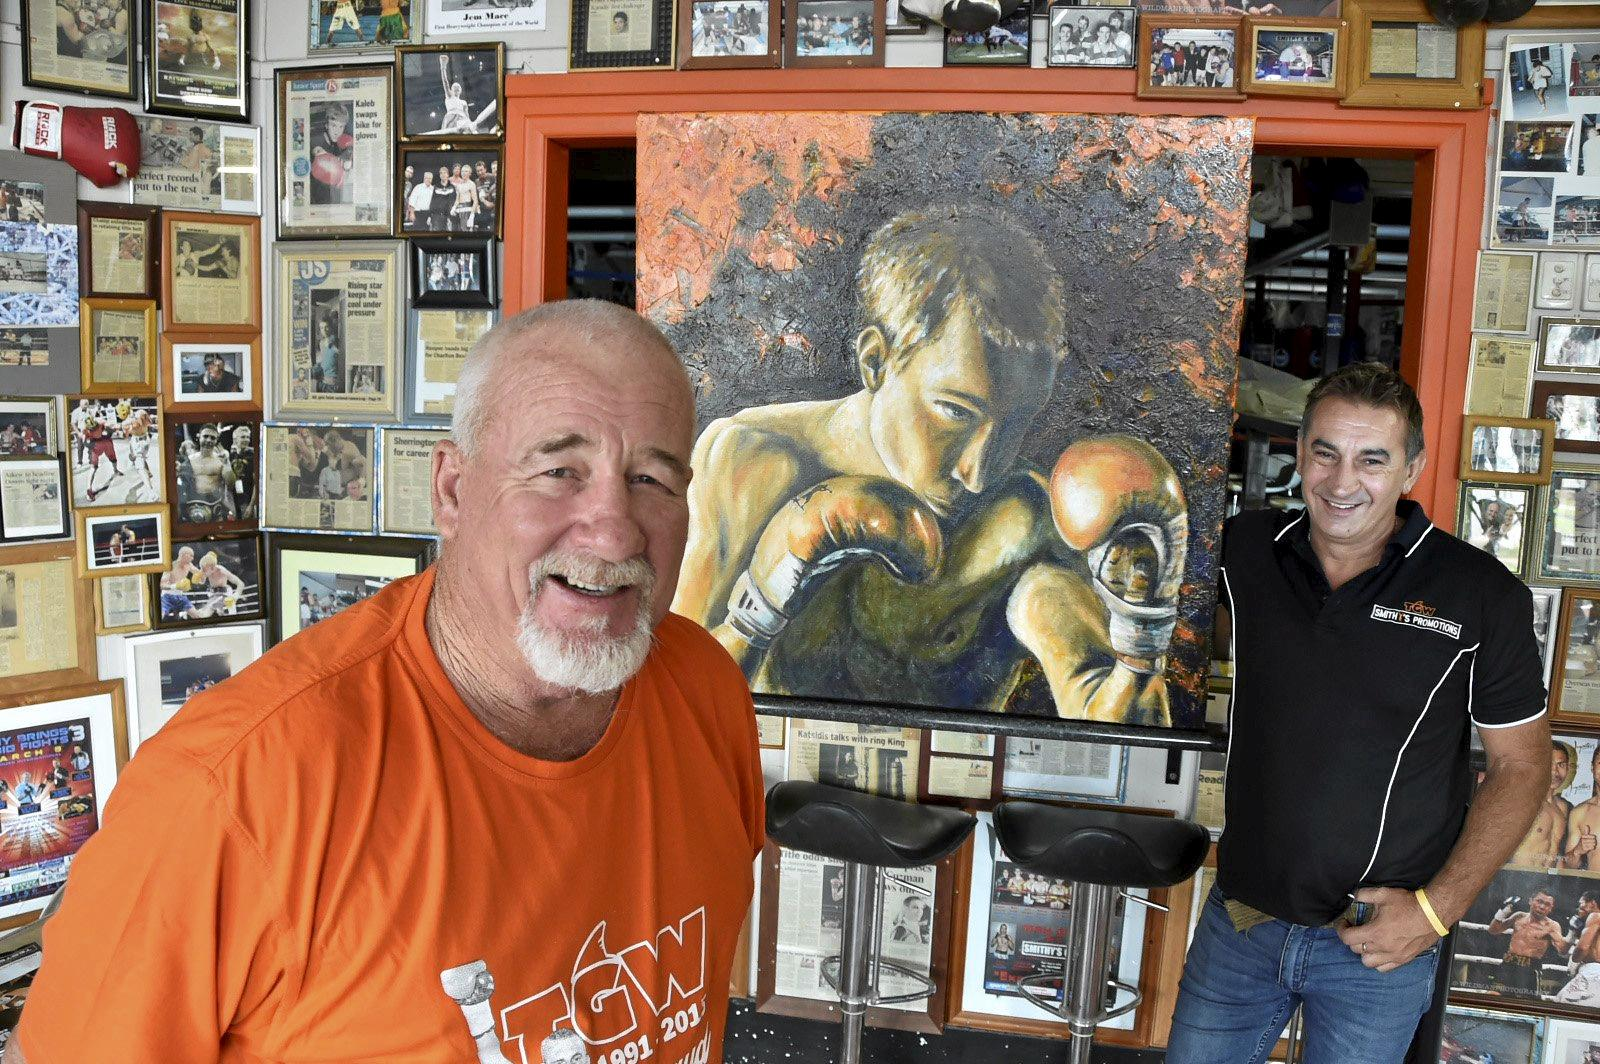 IN MEMORY: Rick Gay (left) and Brendan Smith admire the portrait of Braydon Smith, painted by Maryika Welter. The painting will be auctioned at a fight night in March.